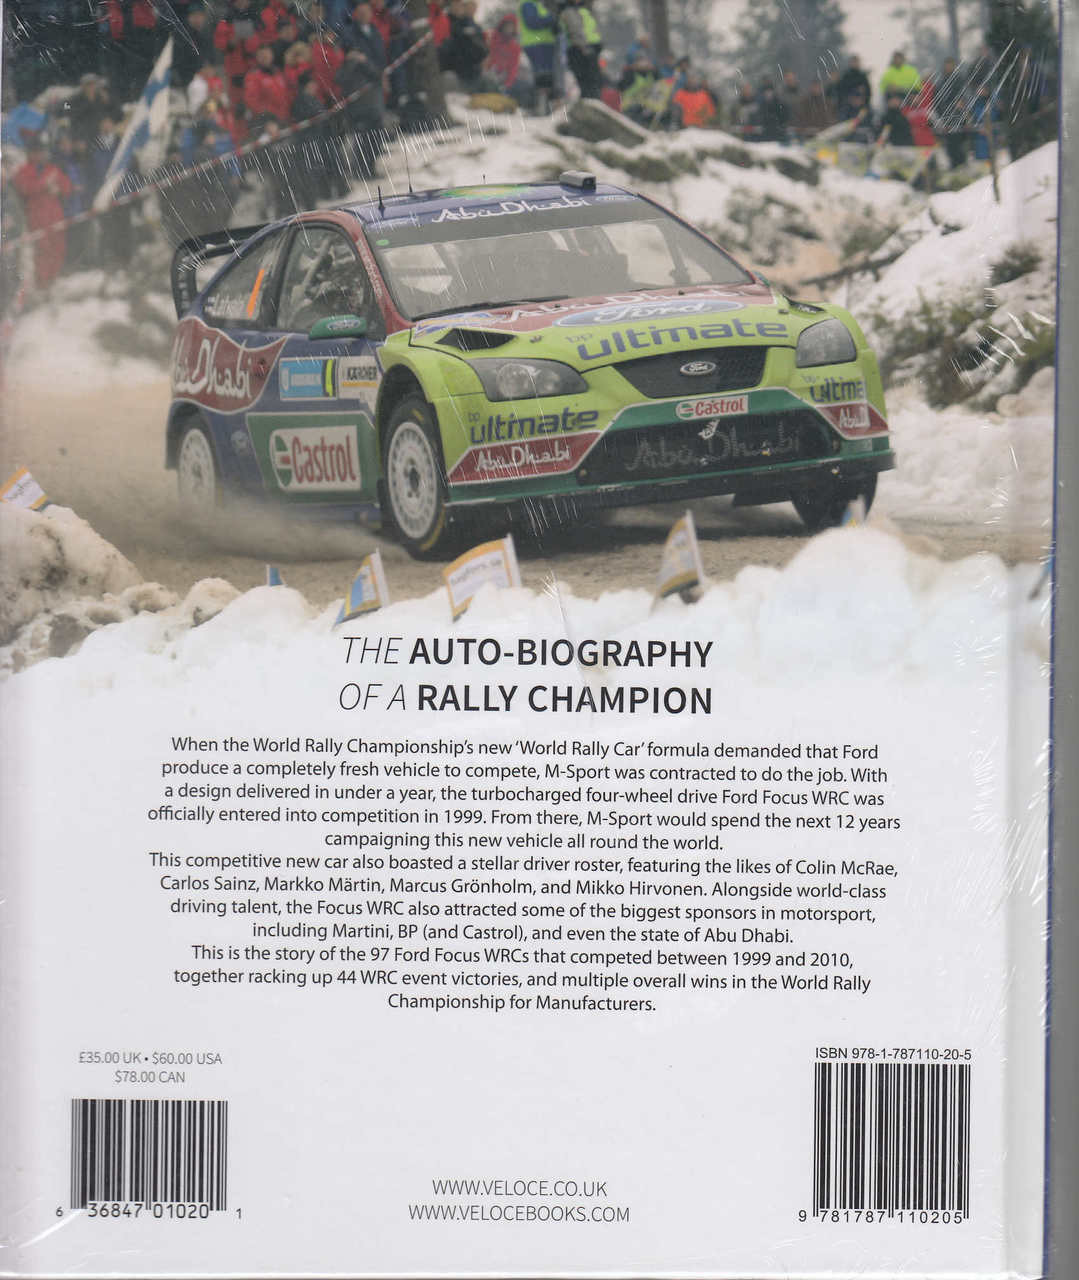 Ford Focus Wrc The Auto Biography Of A Rally Champion 2002 Se Wagon 20 Liter Dohc 16valve Zetec 4 Cylinder 9781787110205